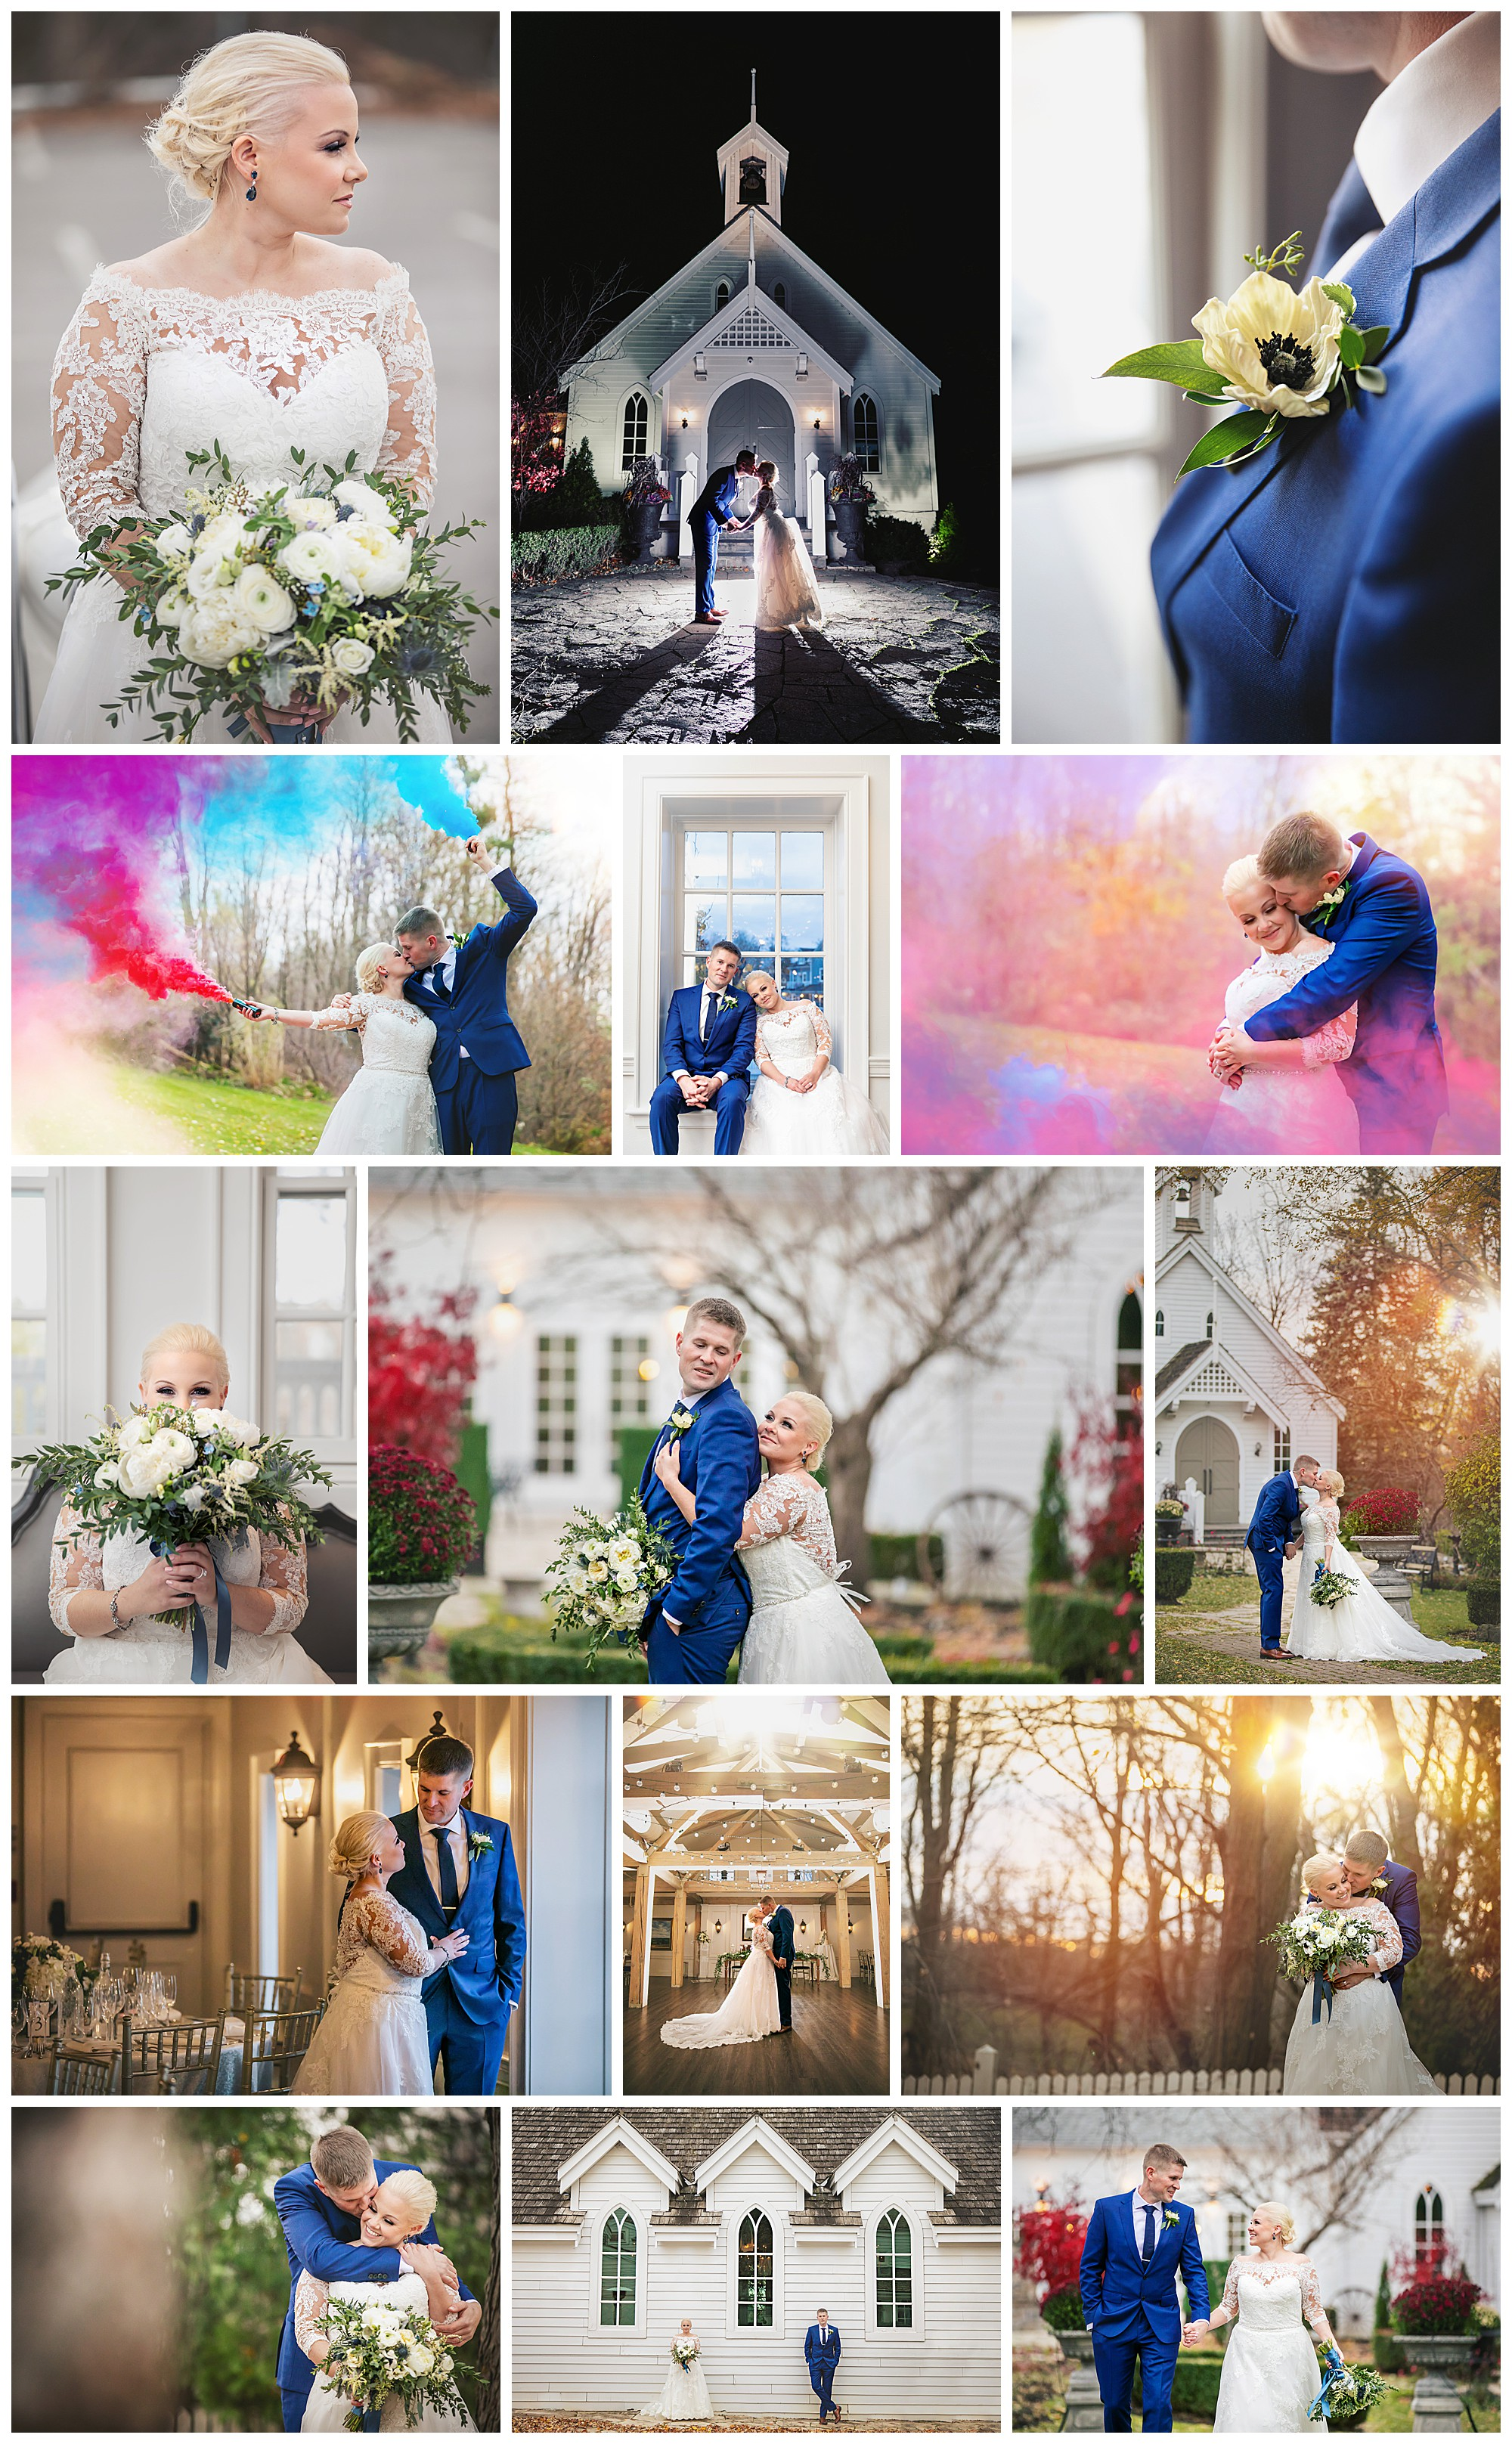 The Doctor's House, Kleinburg, Ontario wedding photography by VanDaele & Russell